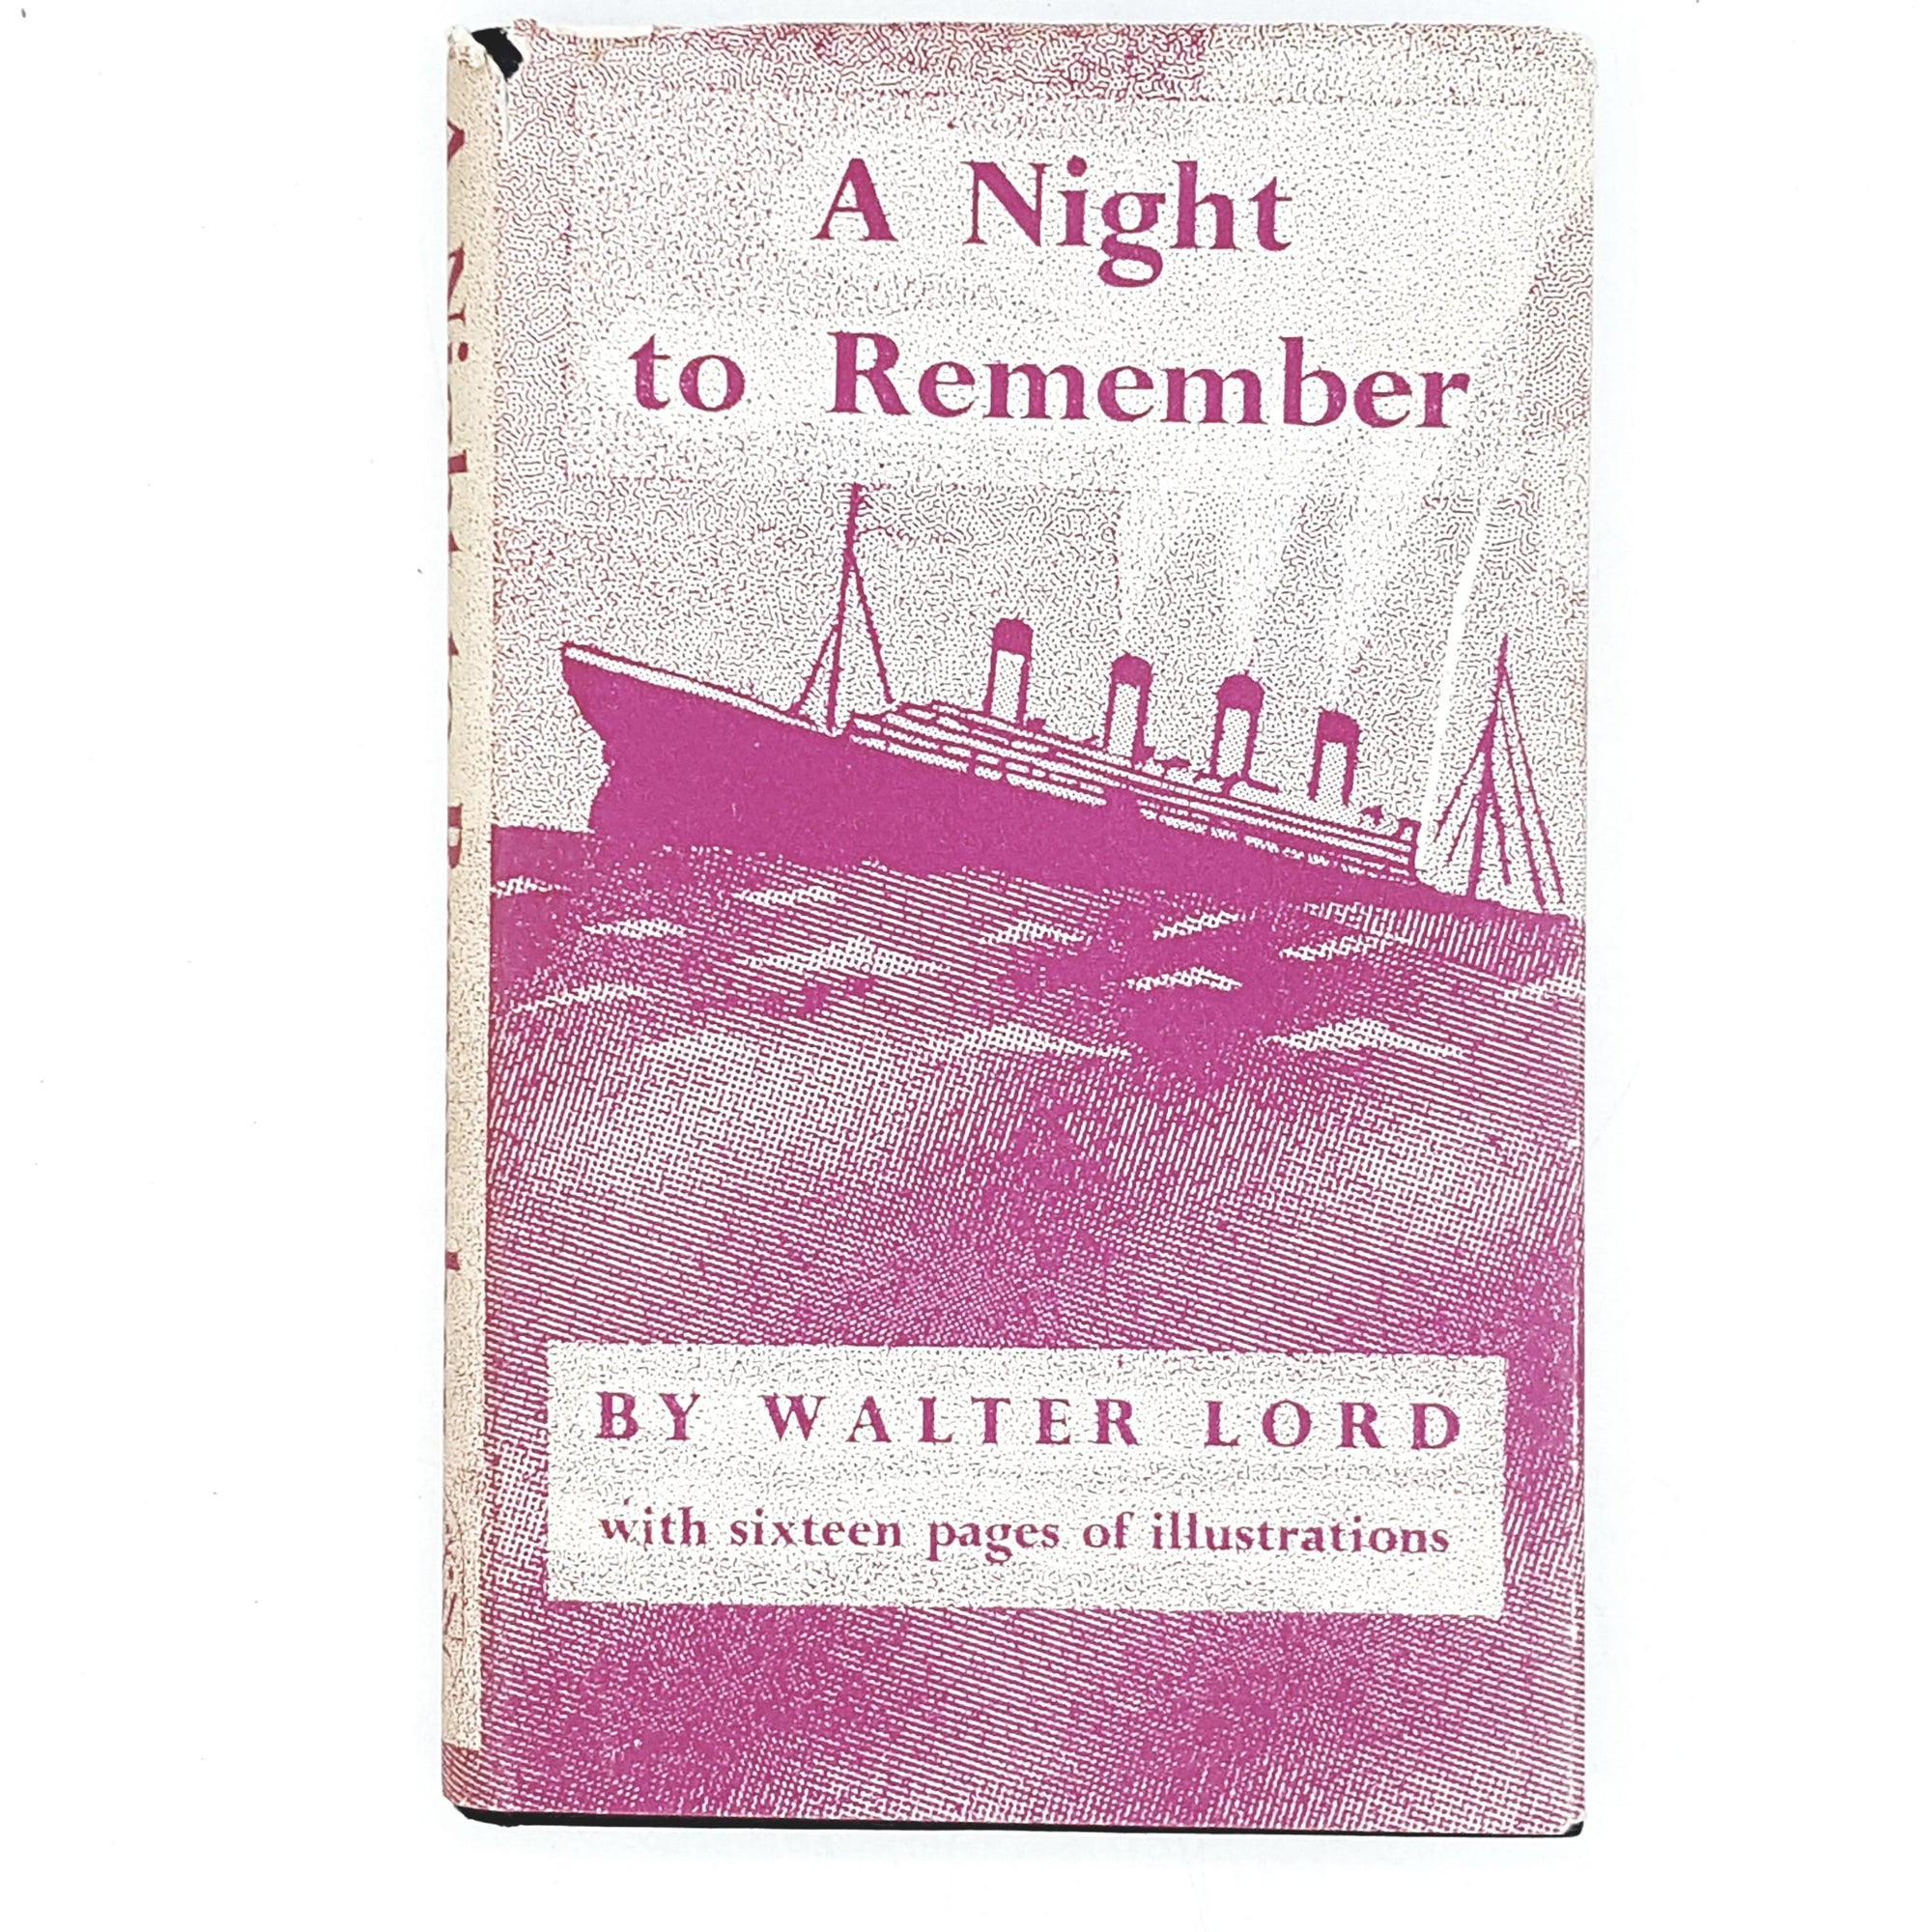 A Night to Remember by Walter Lord 1957